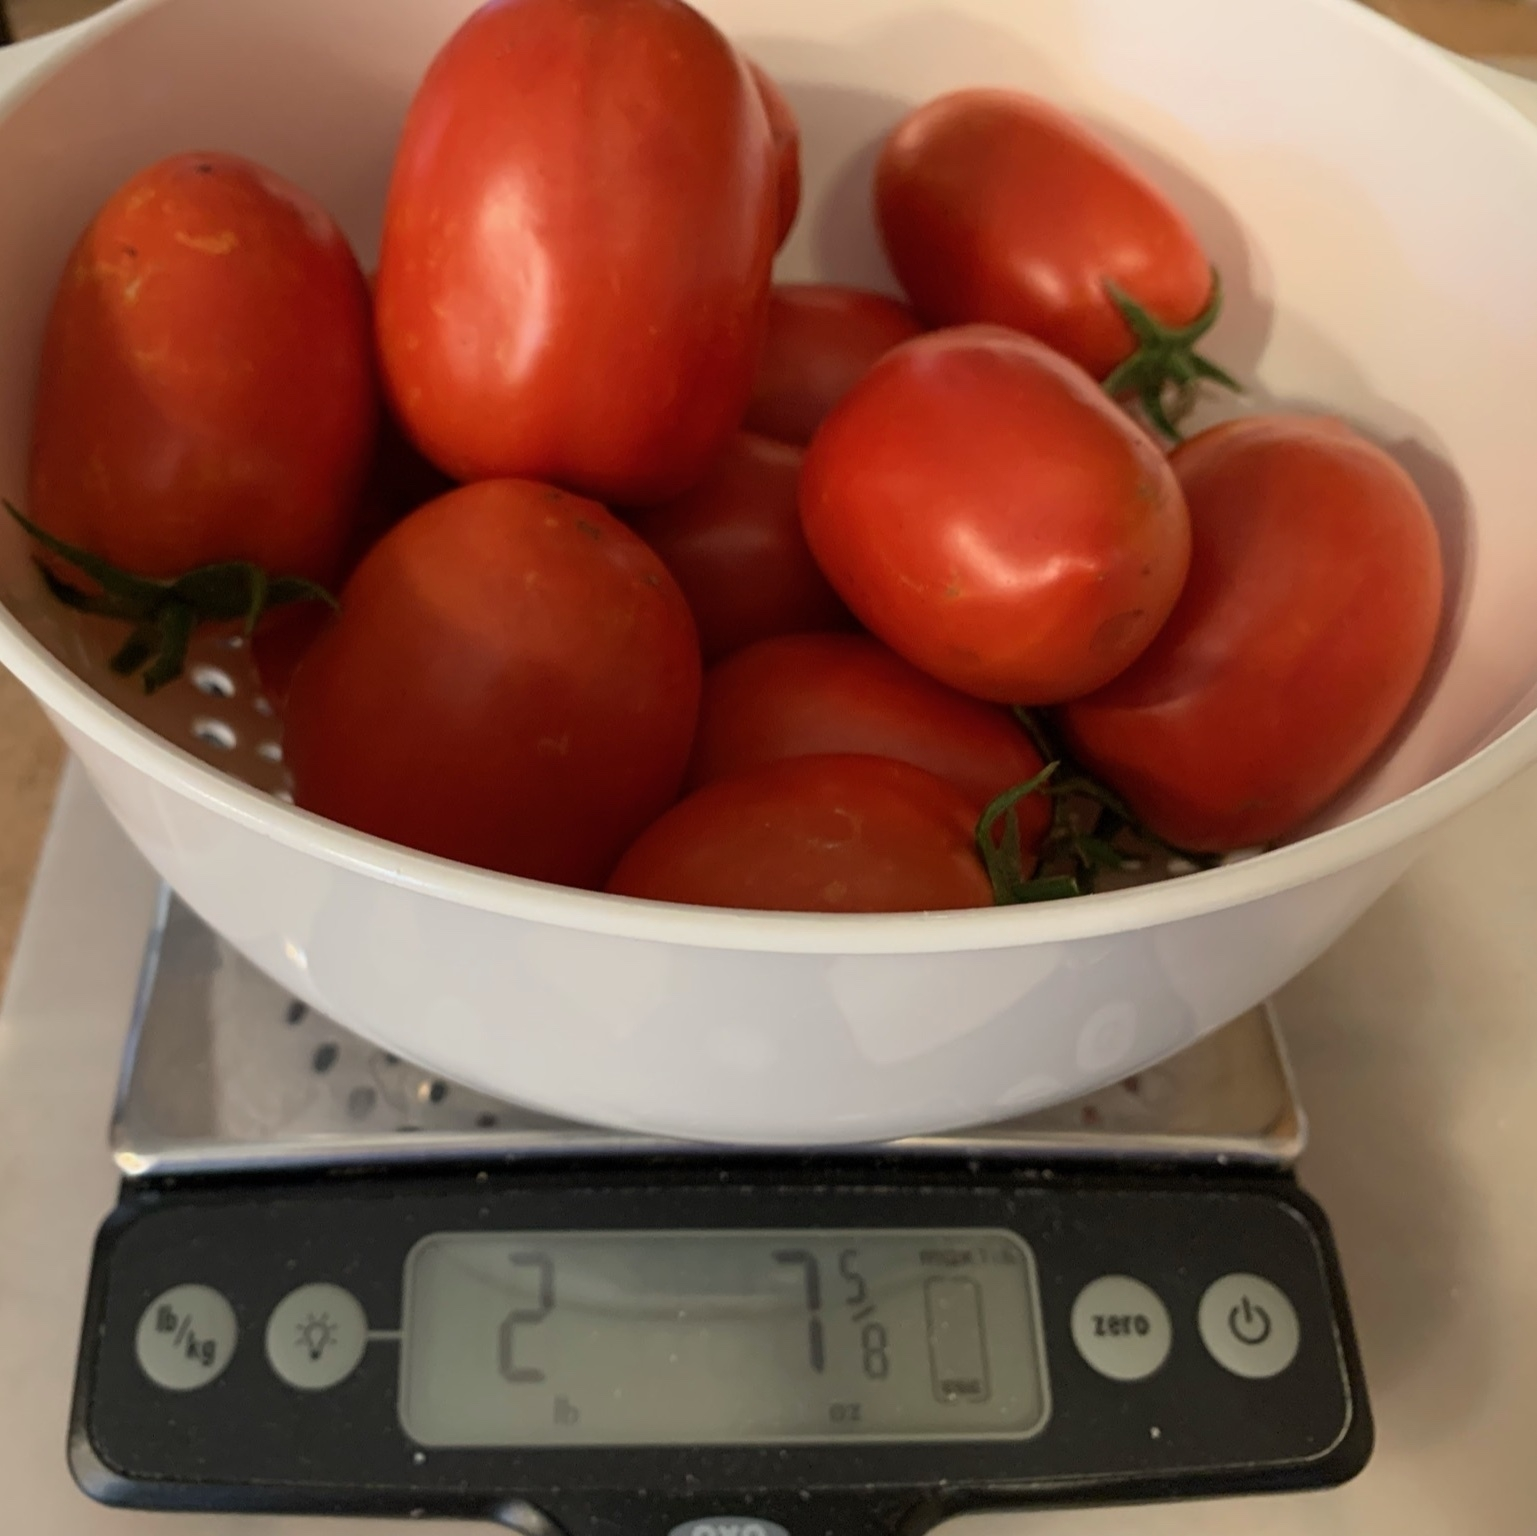 tomatoes sitting on a scale reading about 2 pounds